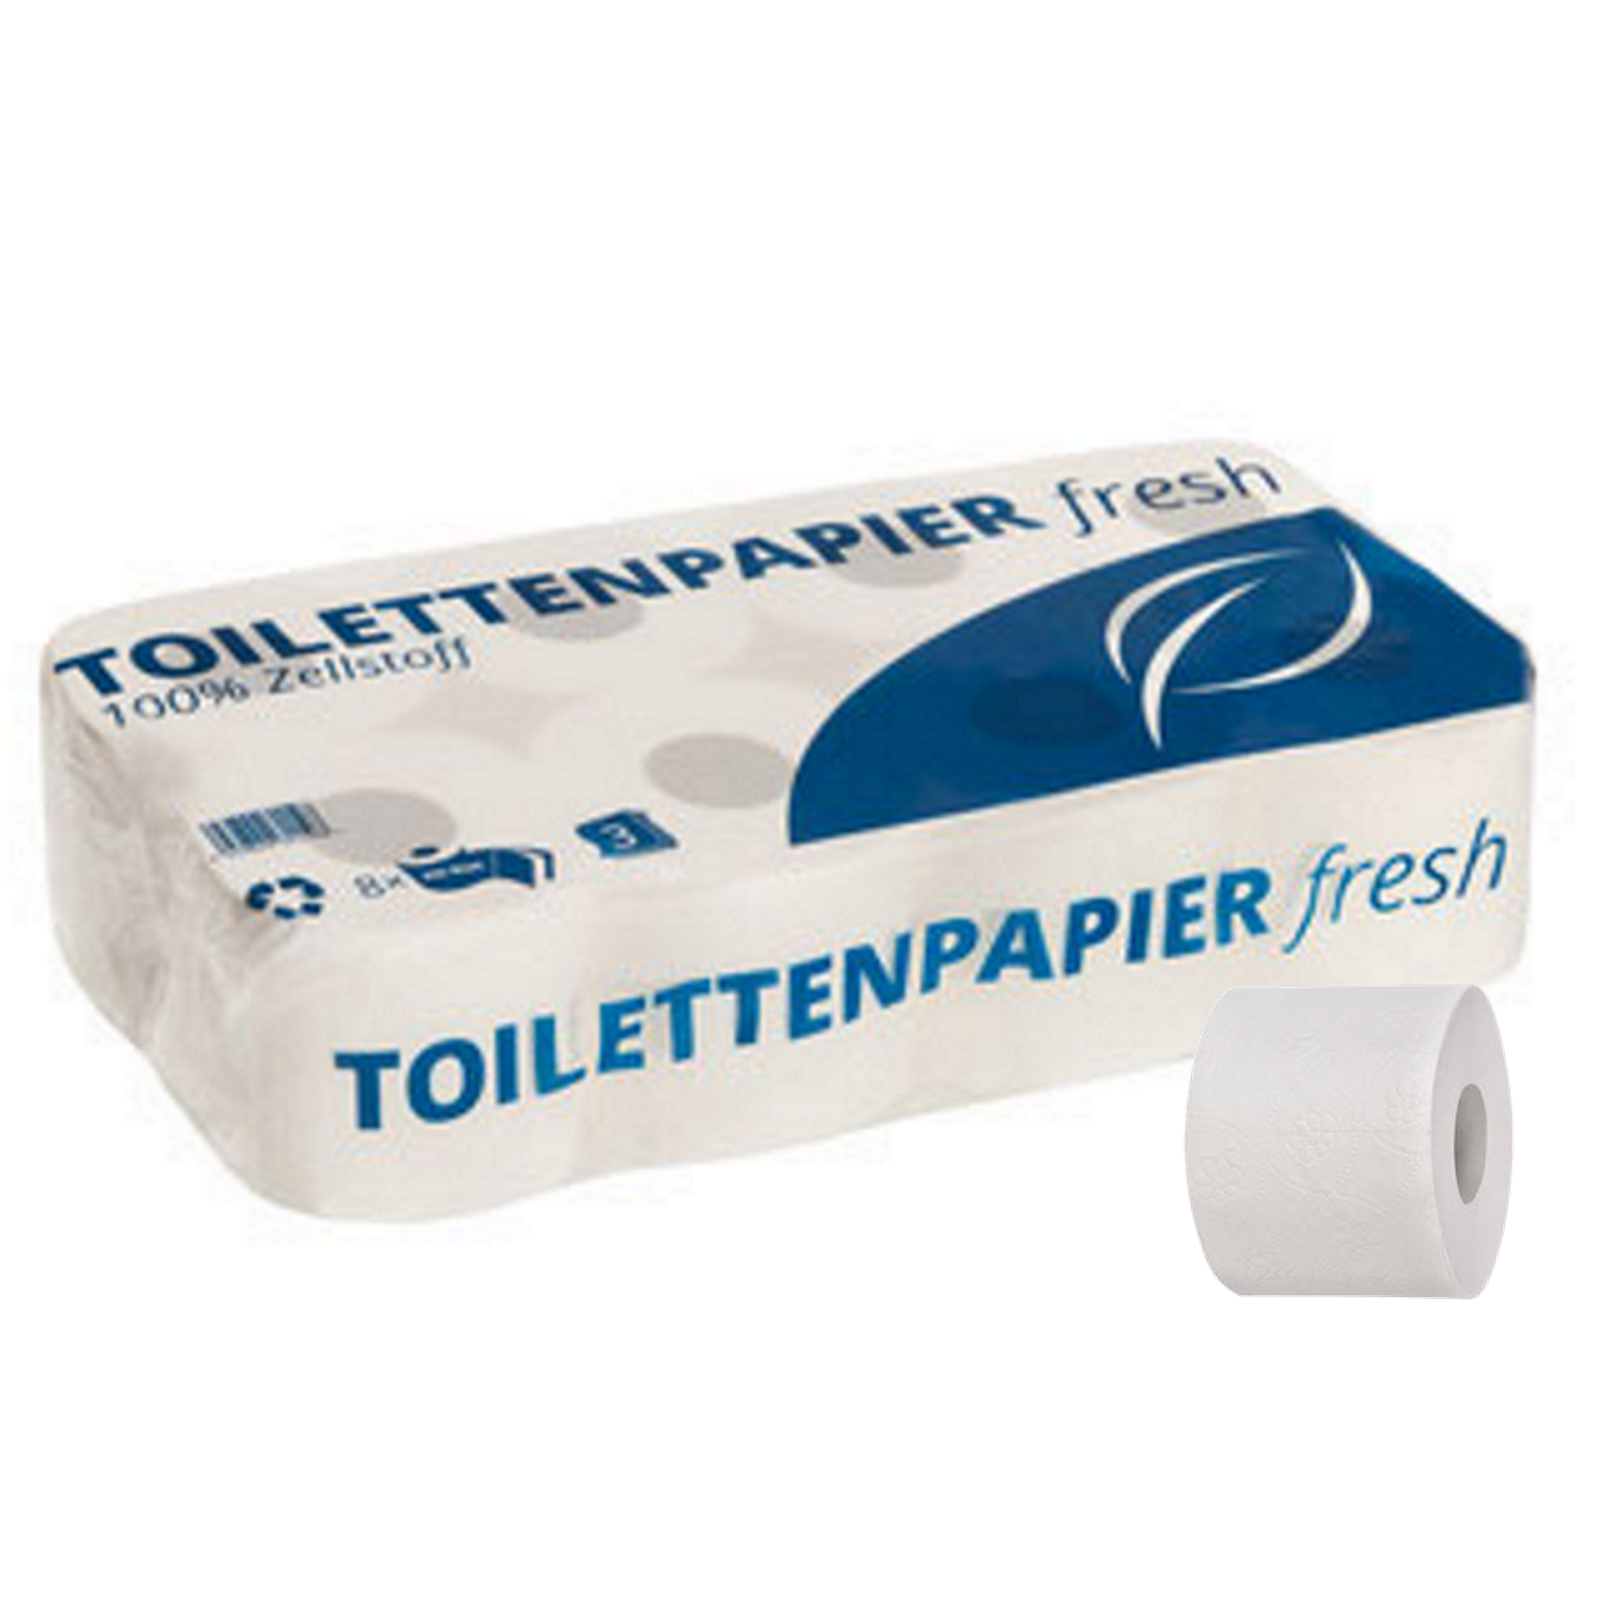 72 rolls of toilet paper 3 layers, 72x250 sheets